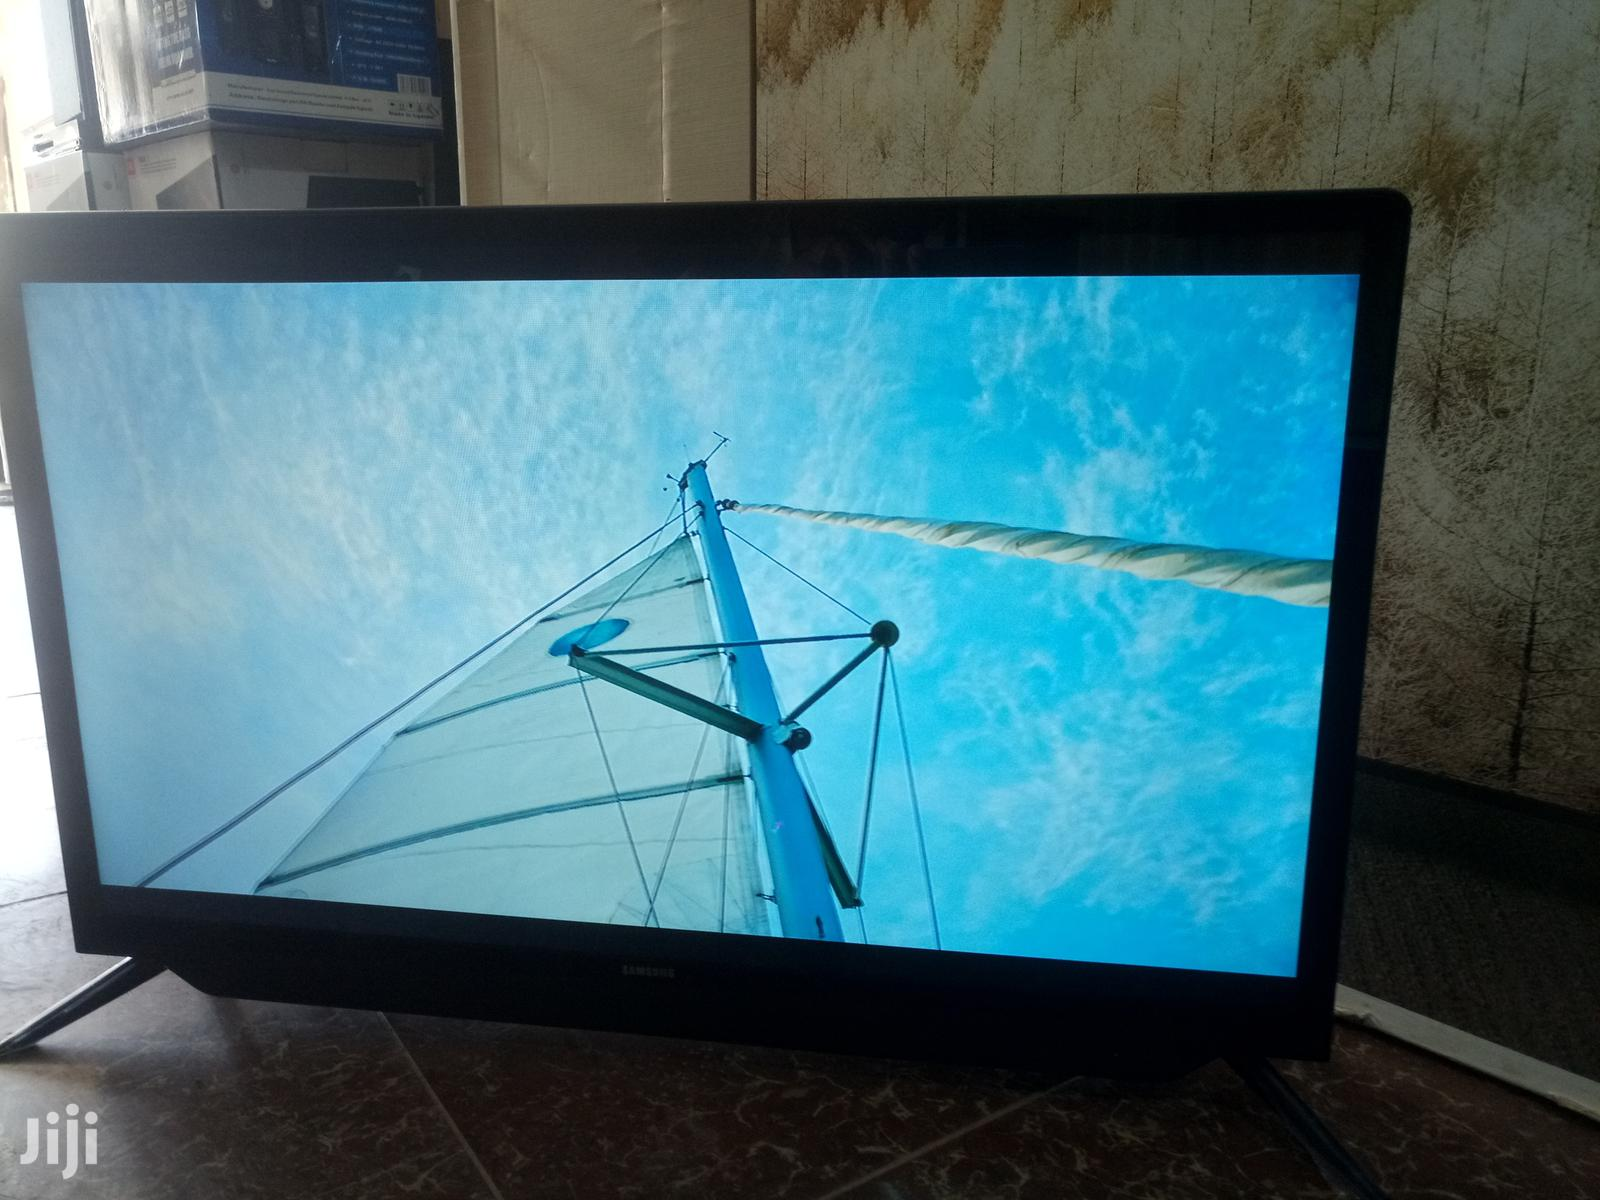 Samsung Flat Screen TV 32 Inches | TV & DVD Equipment for sale in Kampala, Central Region, Uganda